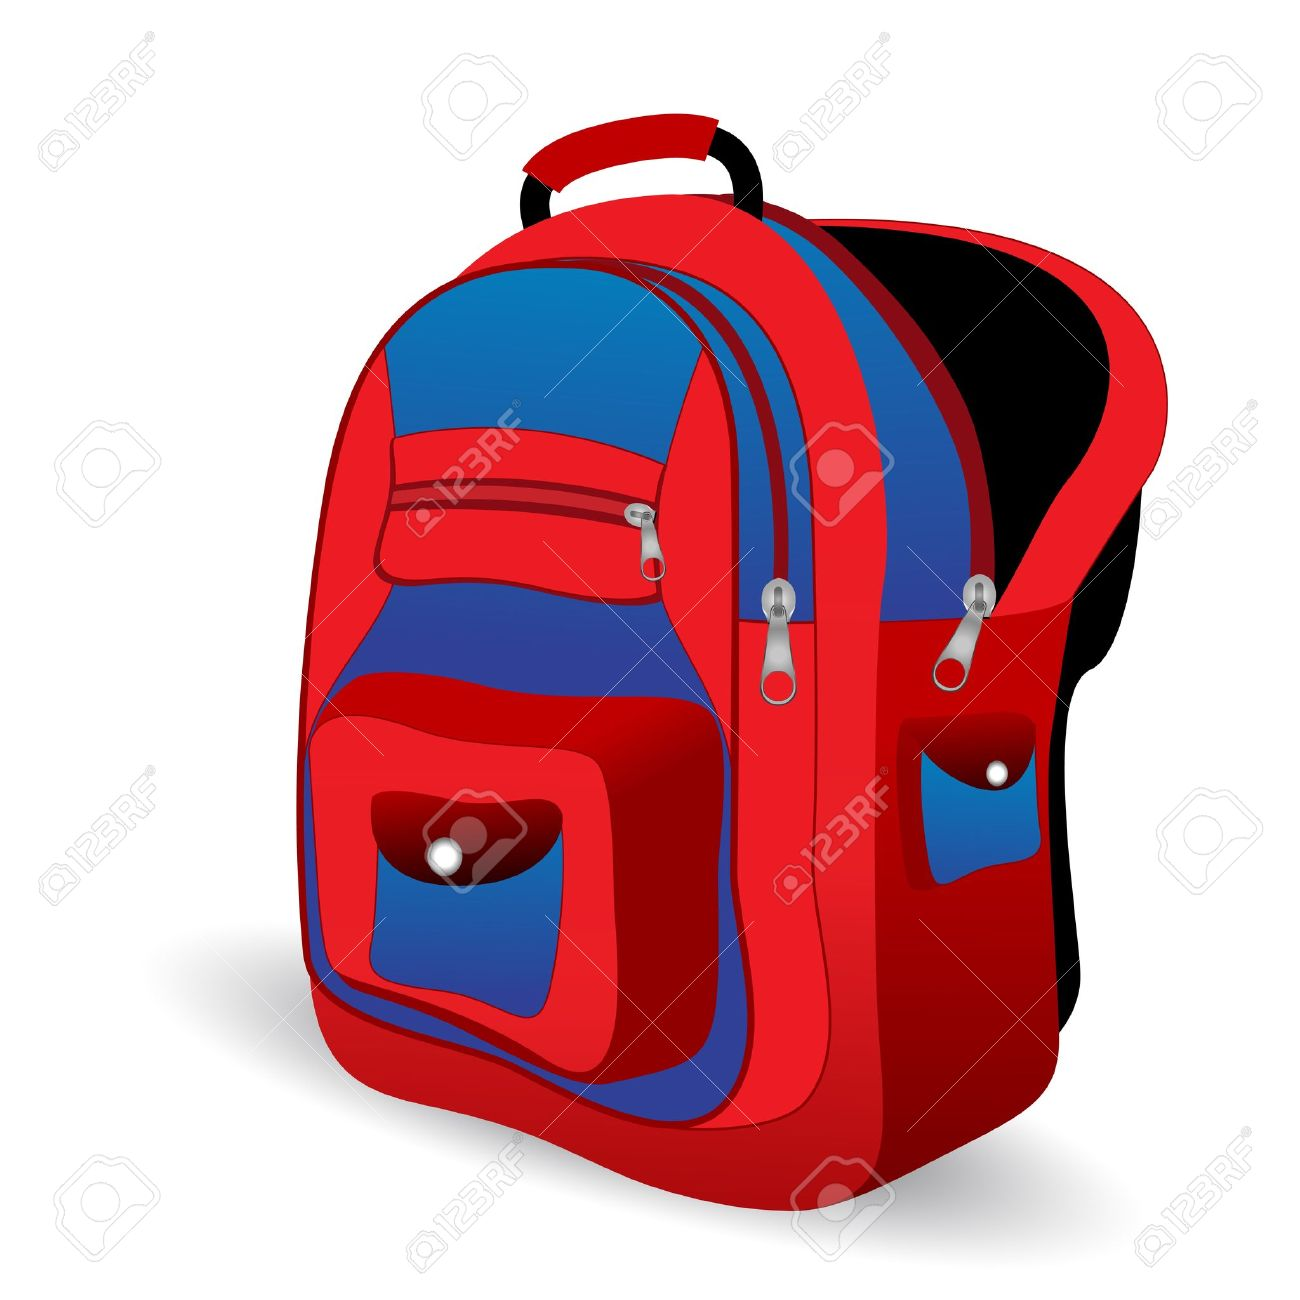 Open Backpack Clipart | Free download best Open Backpack ...